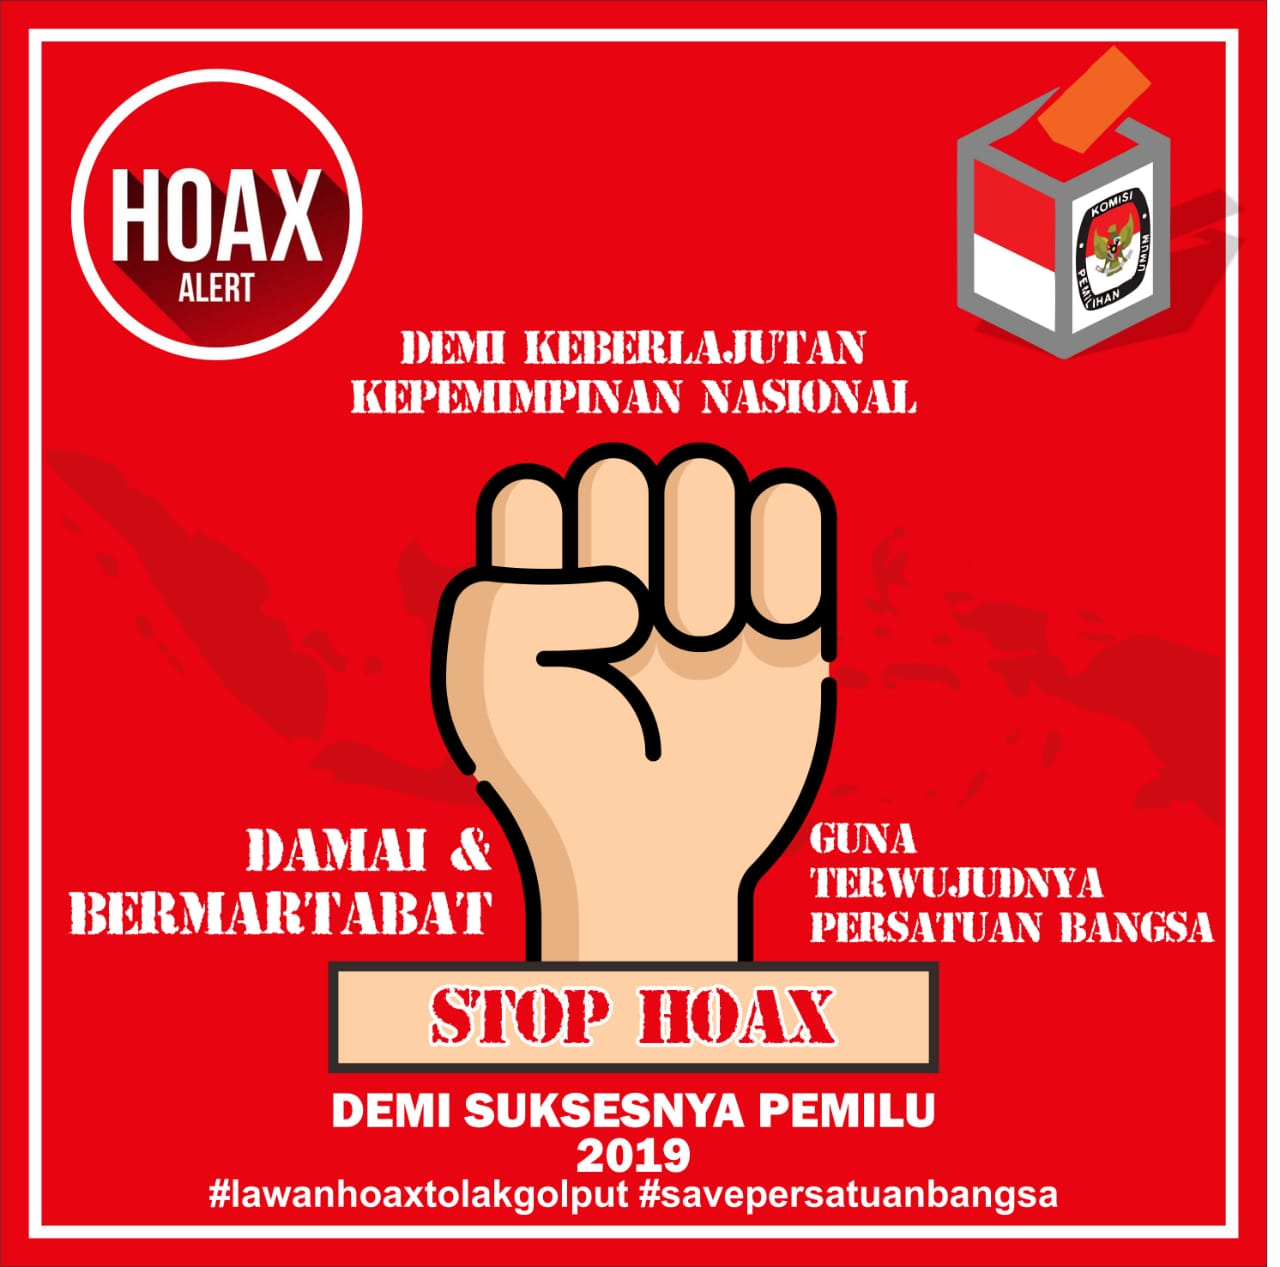 Make a Succeed on the Sustainability of National Development Through 2019  Elections Without Hoax | CIDISS